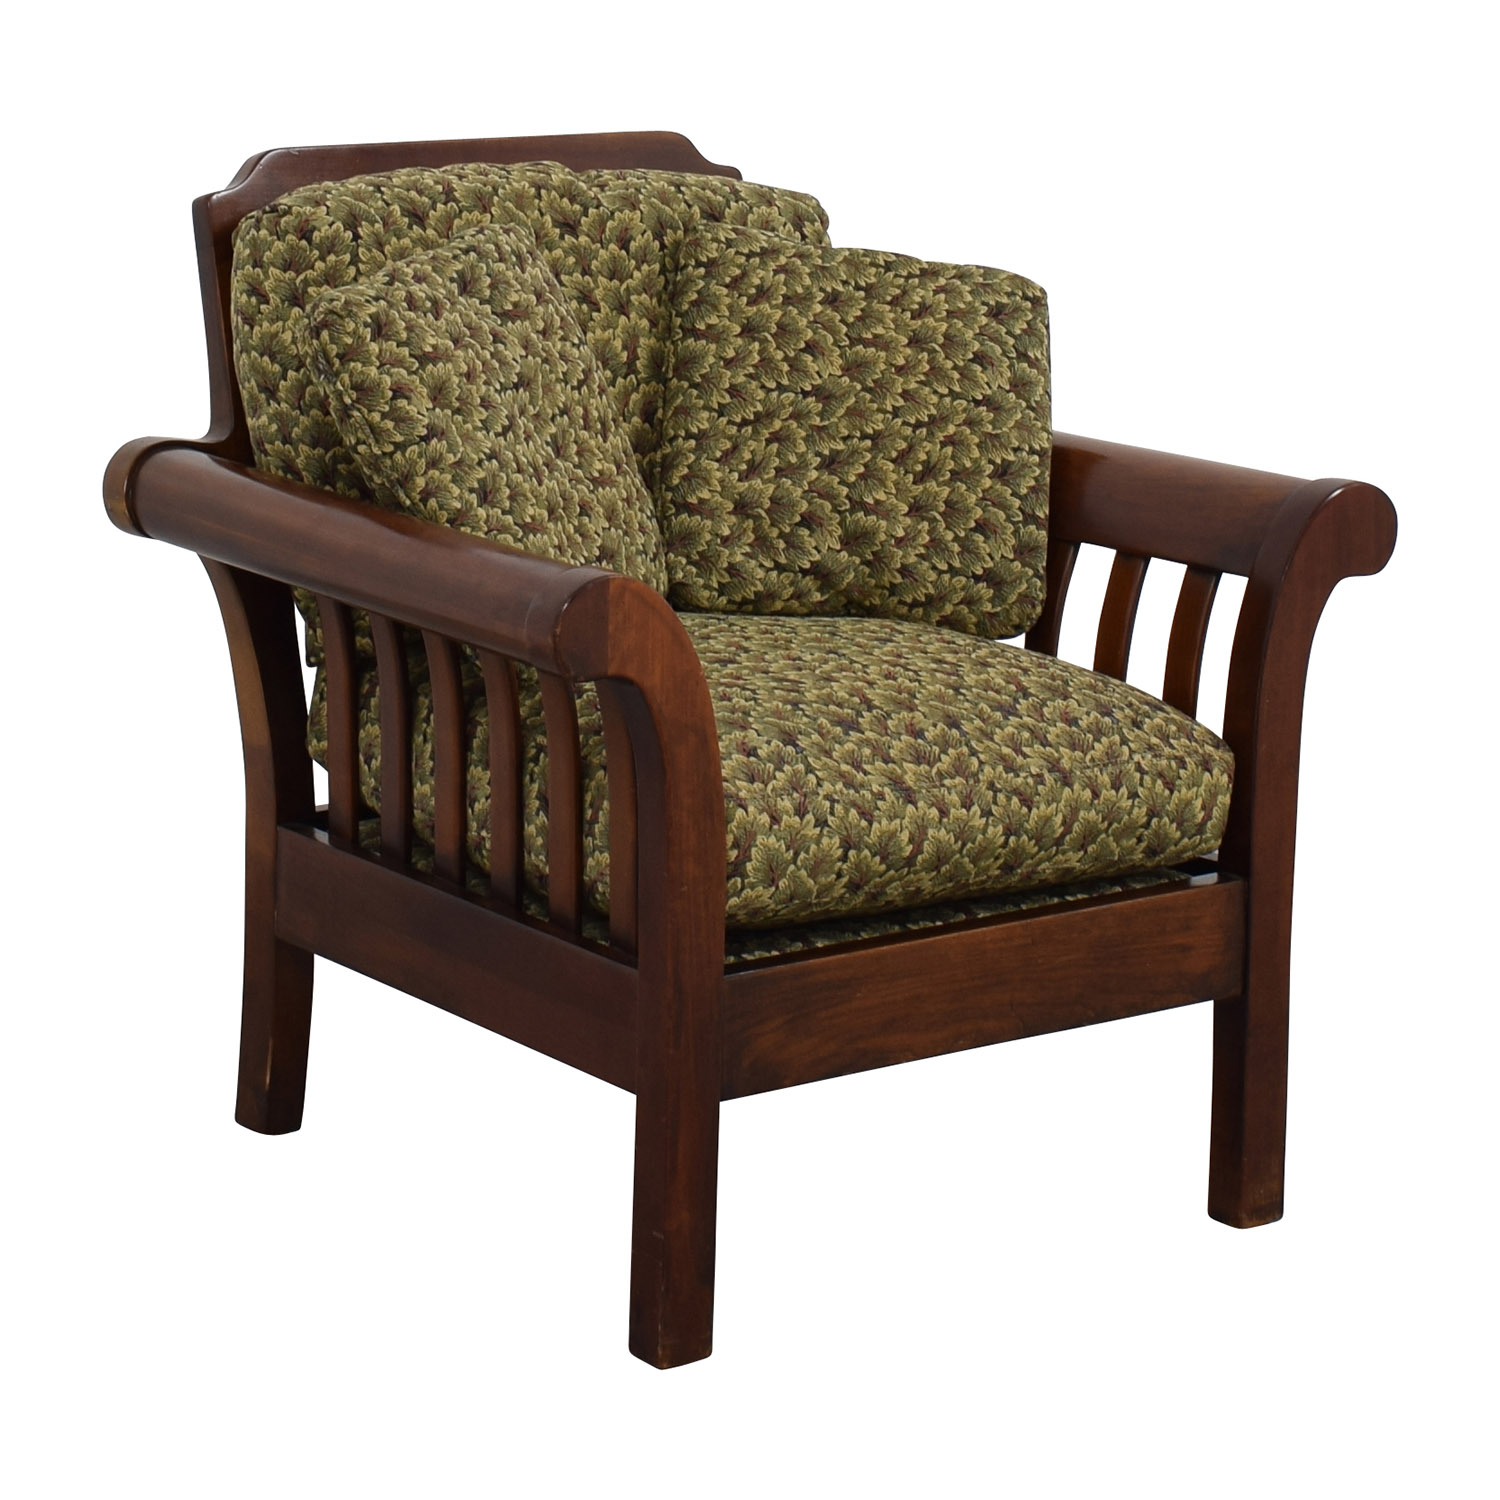 Hickory Chair Company Hickory Chair Company Wood Chair